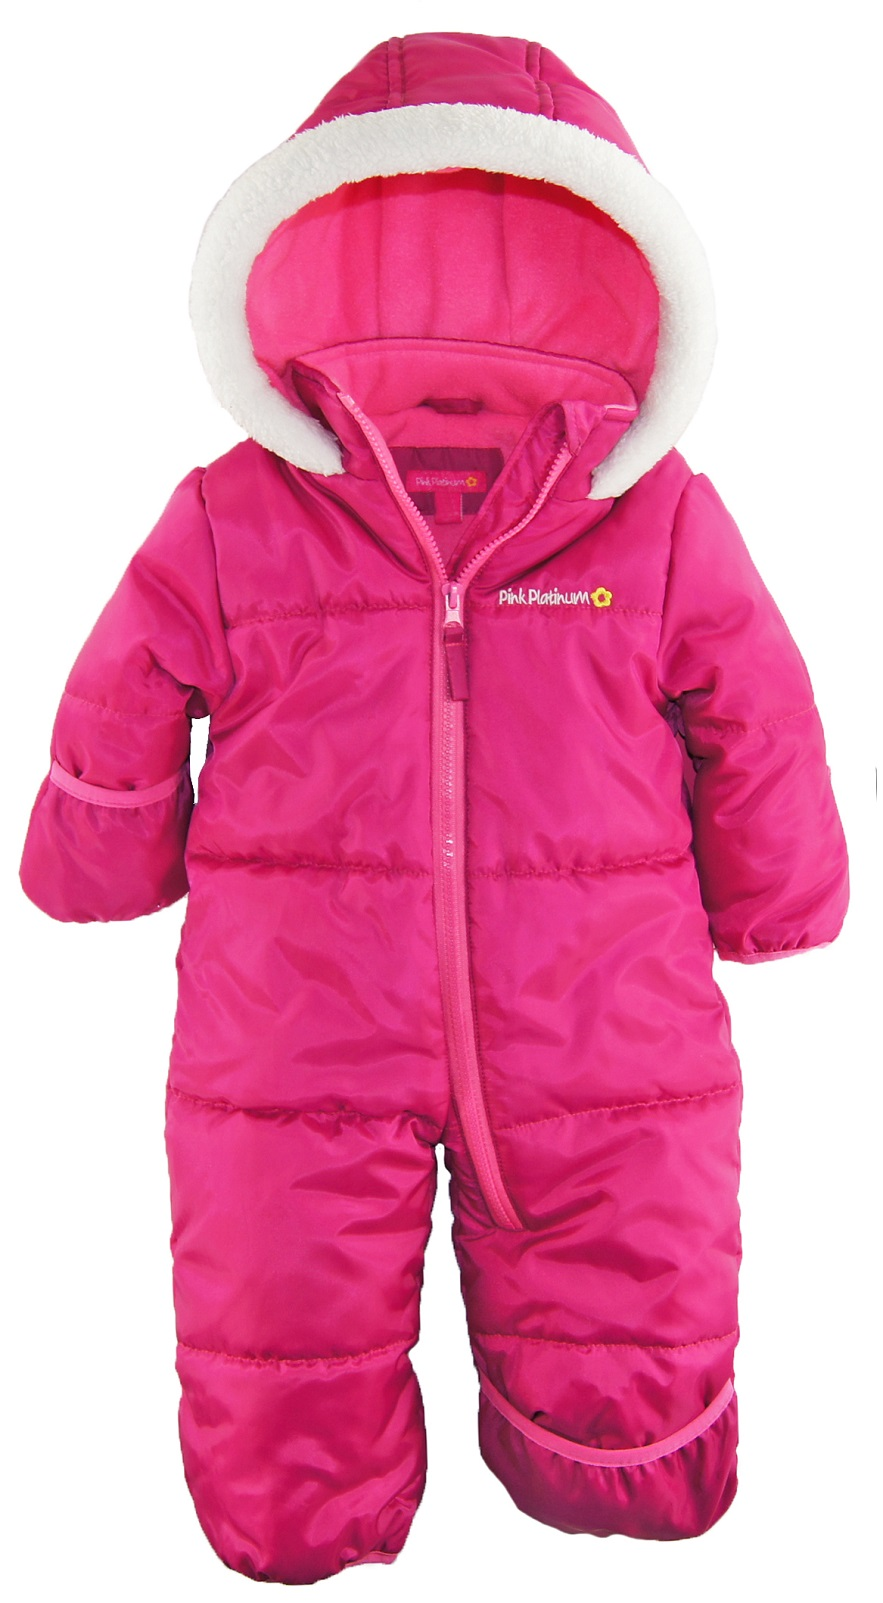 Shop for Kids' Snowsuits, Rain Suits and Buntings at REI - FREE SHIPPING With $50 minimum purchase. Top quality, great selection and expert advice you can trust. % Satisfaction Guarantee 18 Months (5) add filter: 18 Months. 5 results. 2T (7) add filter: 2T. 7 results. Add Double Flake Reversible Snowsuit Set.